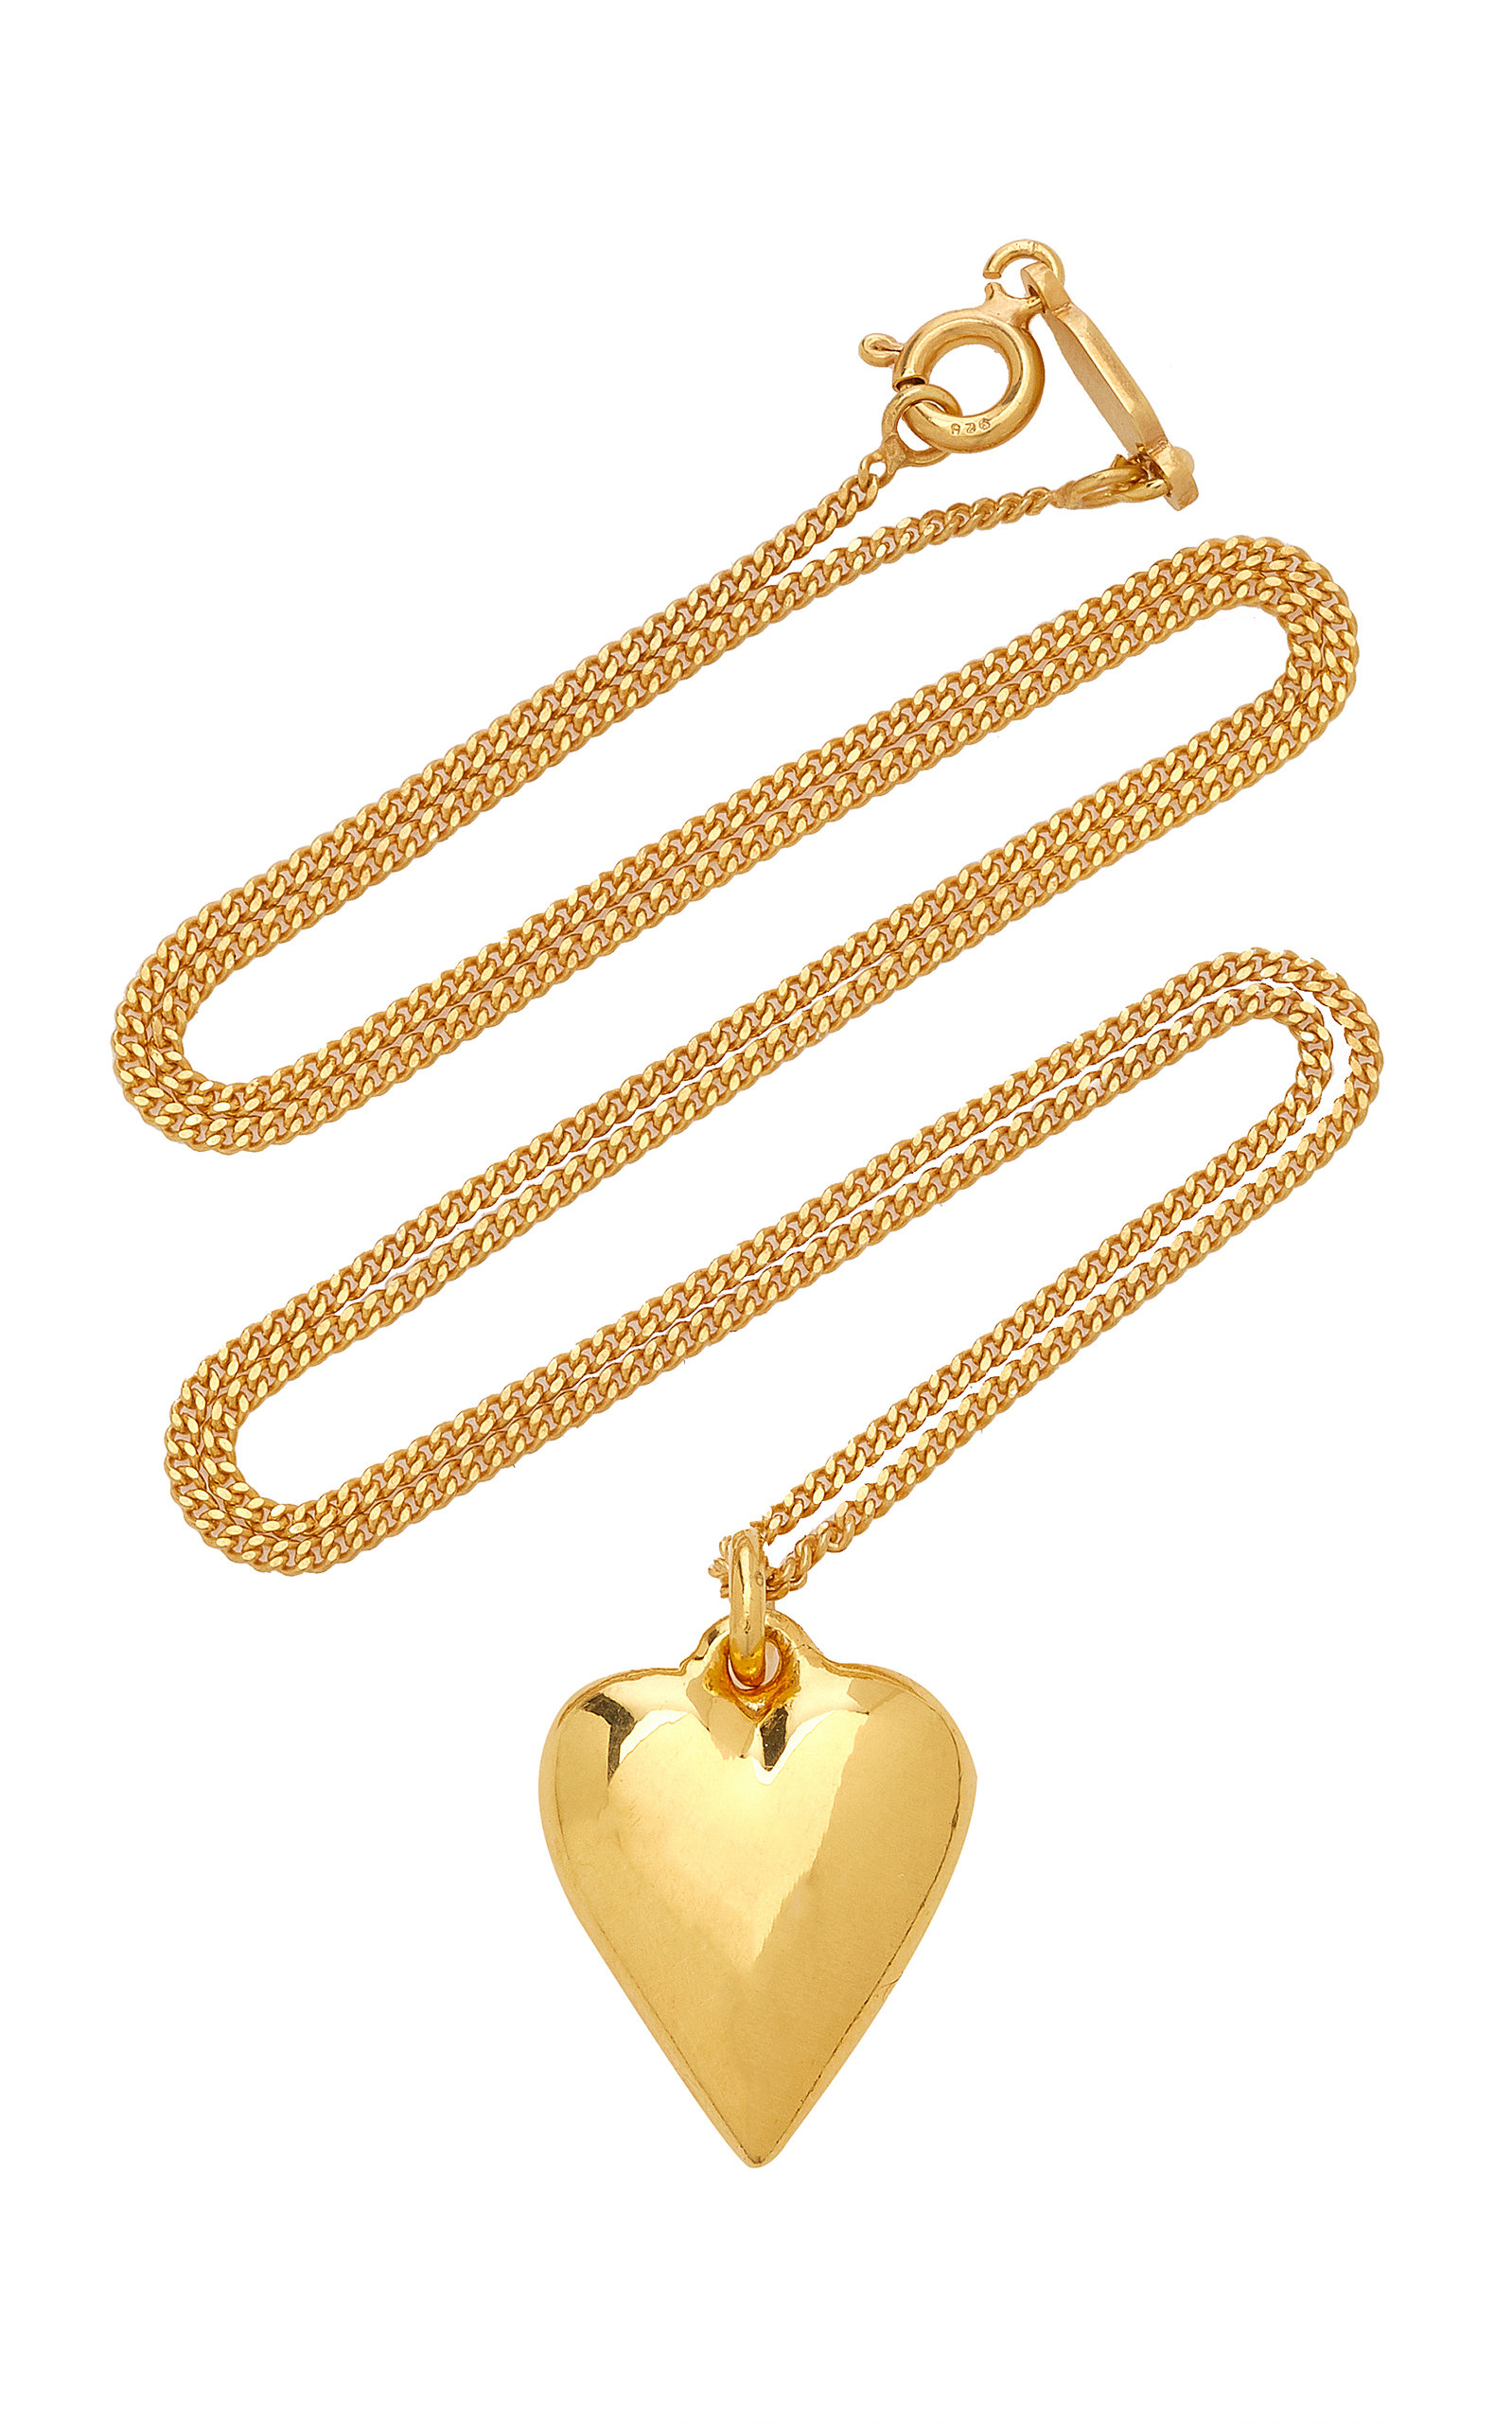 Women's Exclusive Heart 14K Gold-Plated Necklace